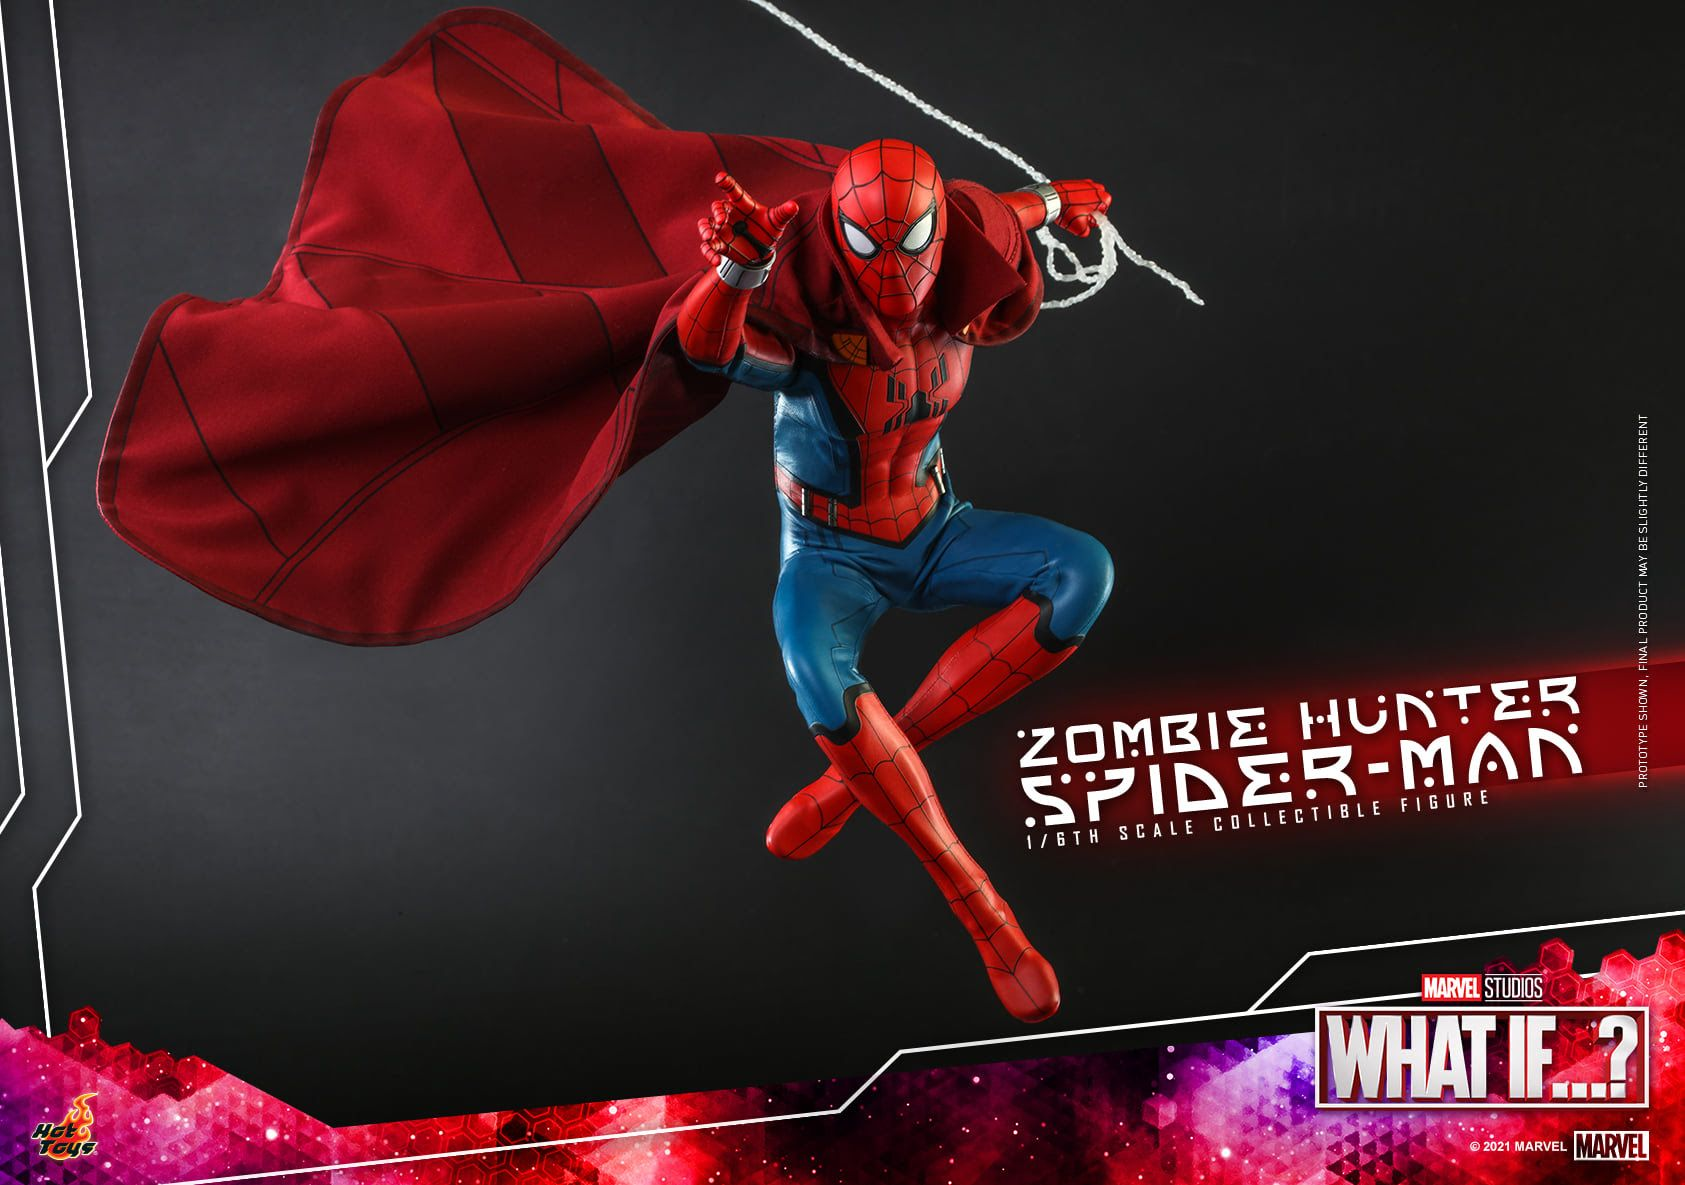 Marvel's What If...? Zombie Hunter Spider-Man Figure Gets First Images